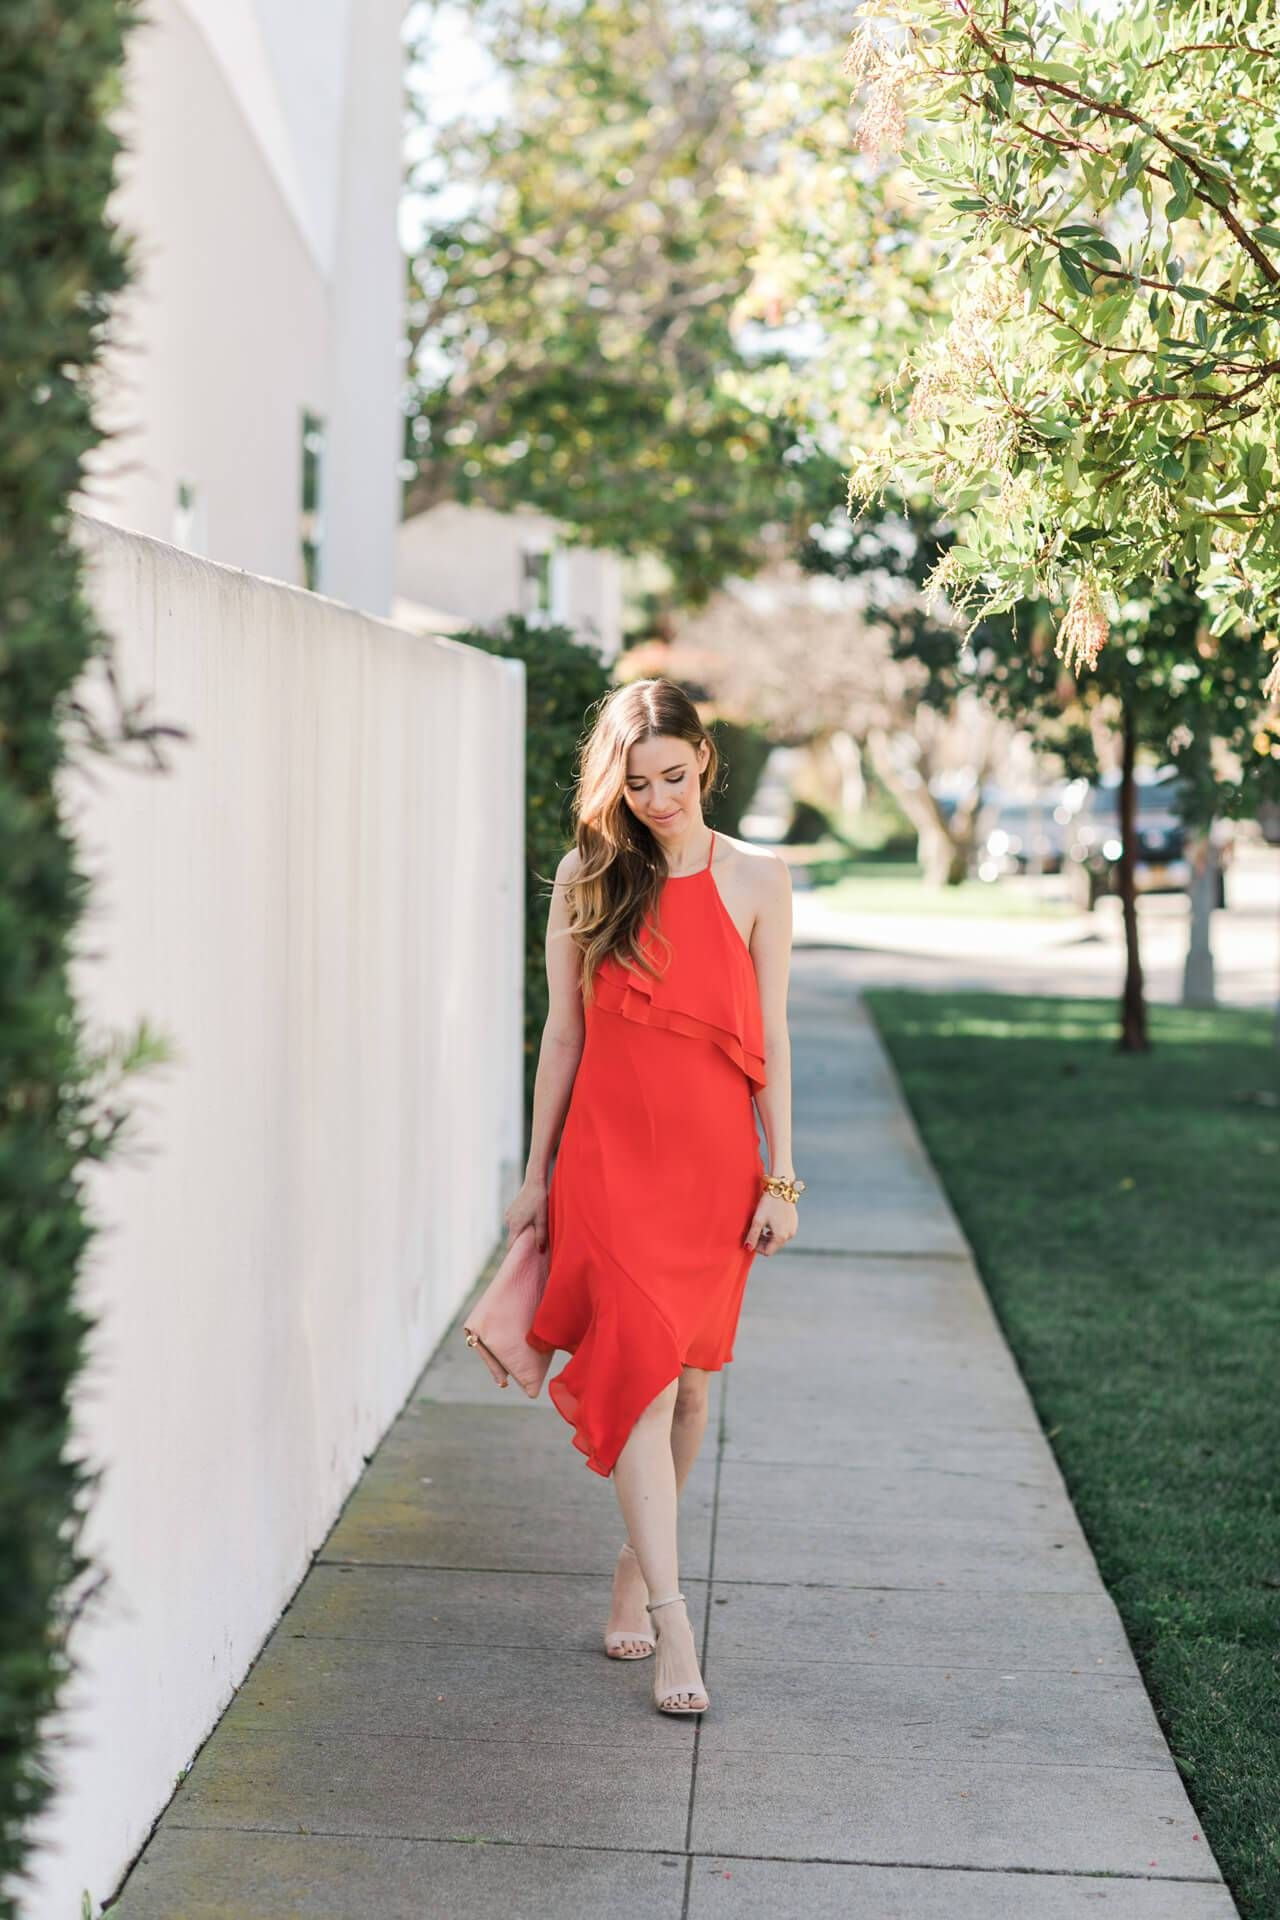 Pink dress emoji  Whatus Your Most Used Emoji  What To Wear For Spring  Pinterest